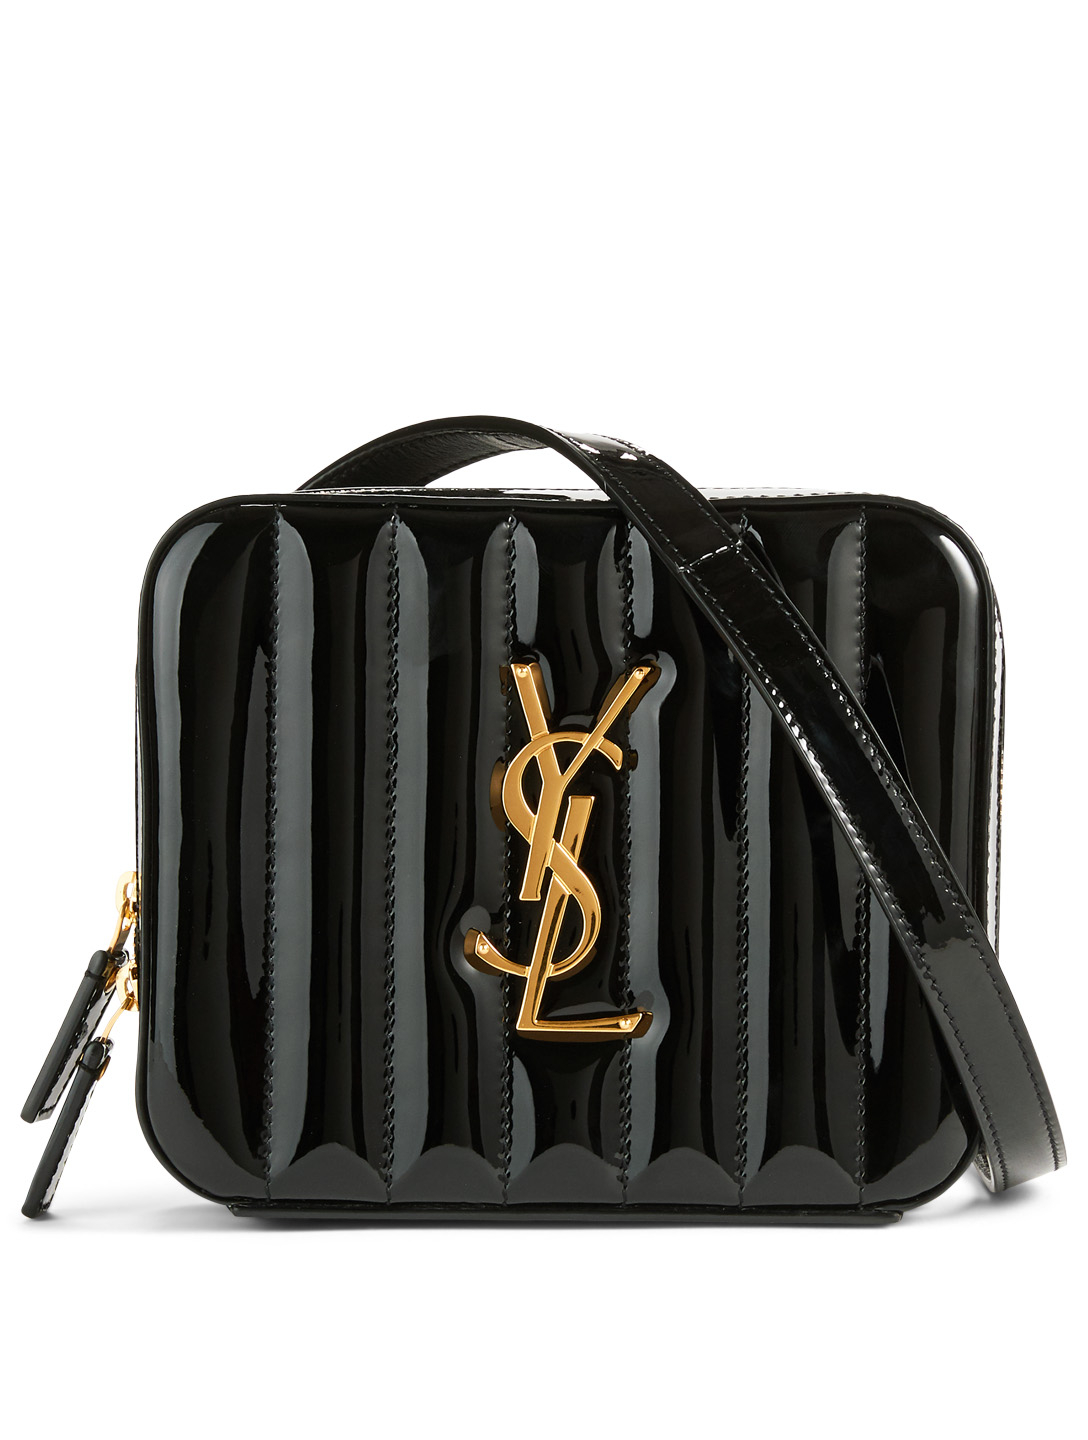 SAINT LAURENT Vicky YSL Monogram Patent Leather Belt Bag Women's Black